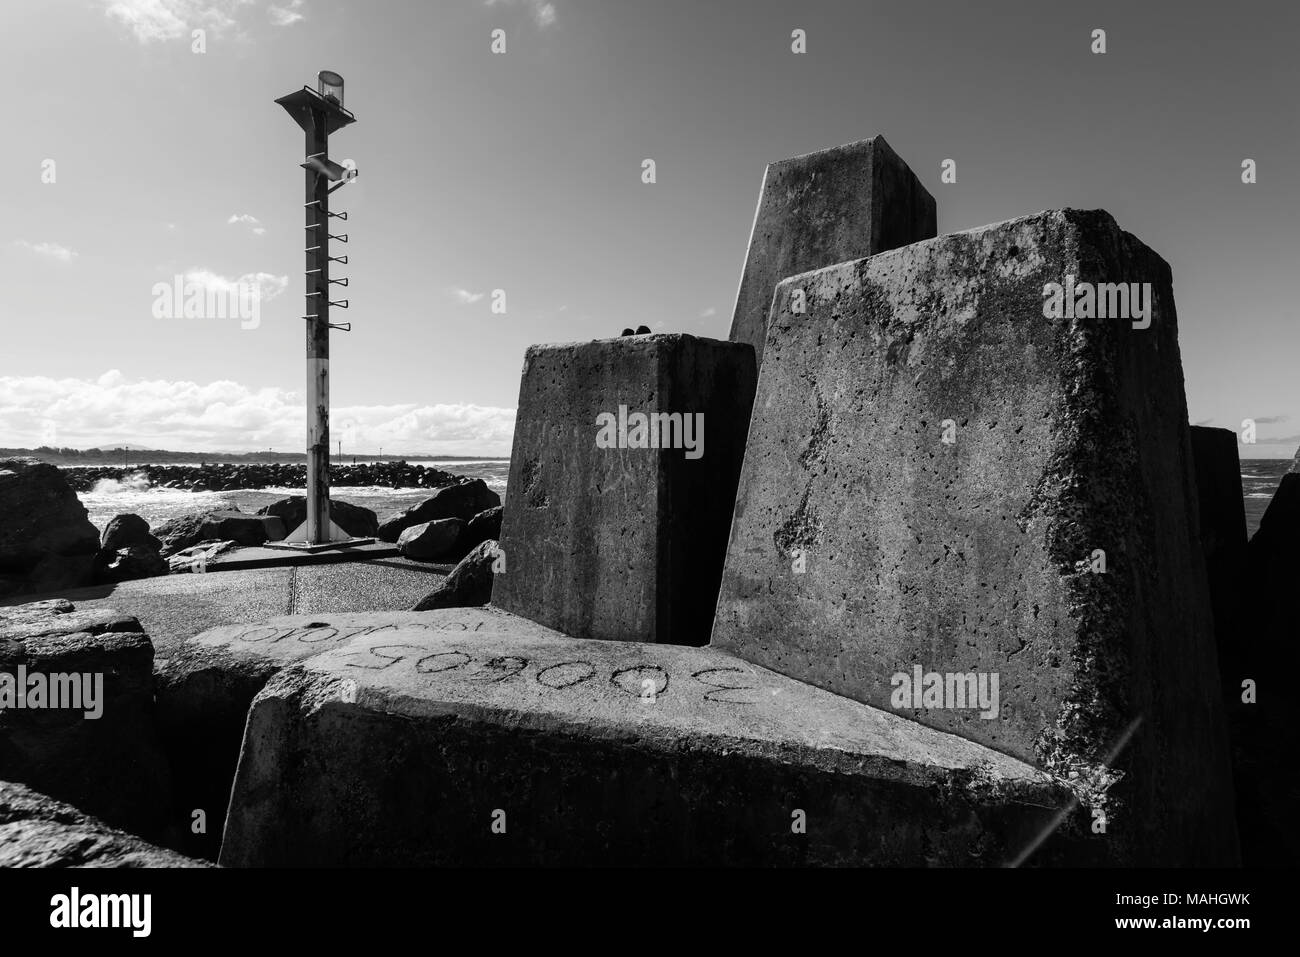 massive concrete tetrapod blocks and a beacon at the southern breakwater entrance to Wallis Lake at Forster Tuncurry, NSW, Australia - Stock Image